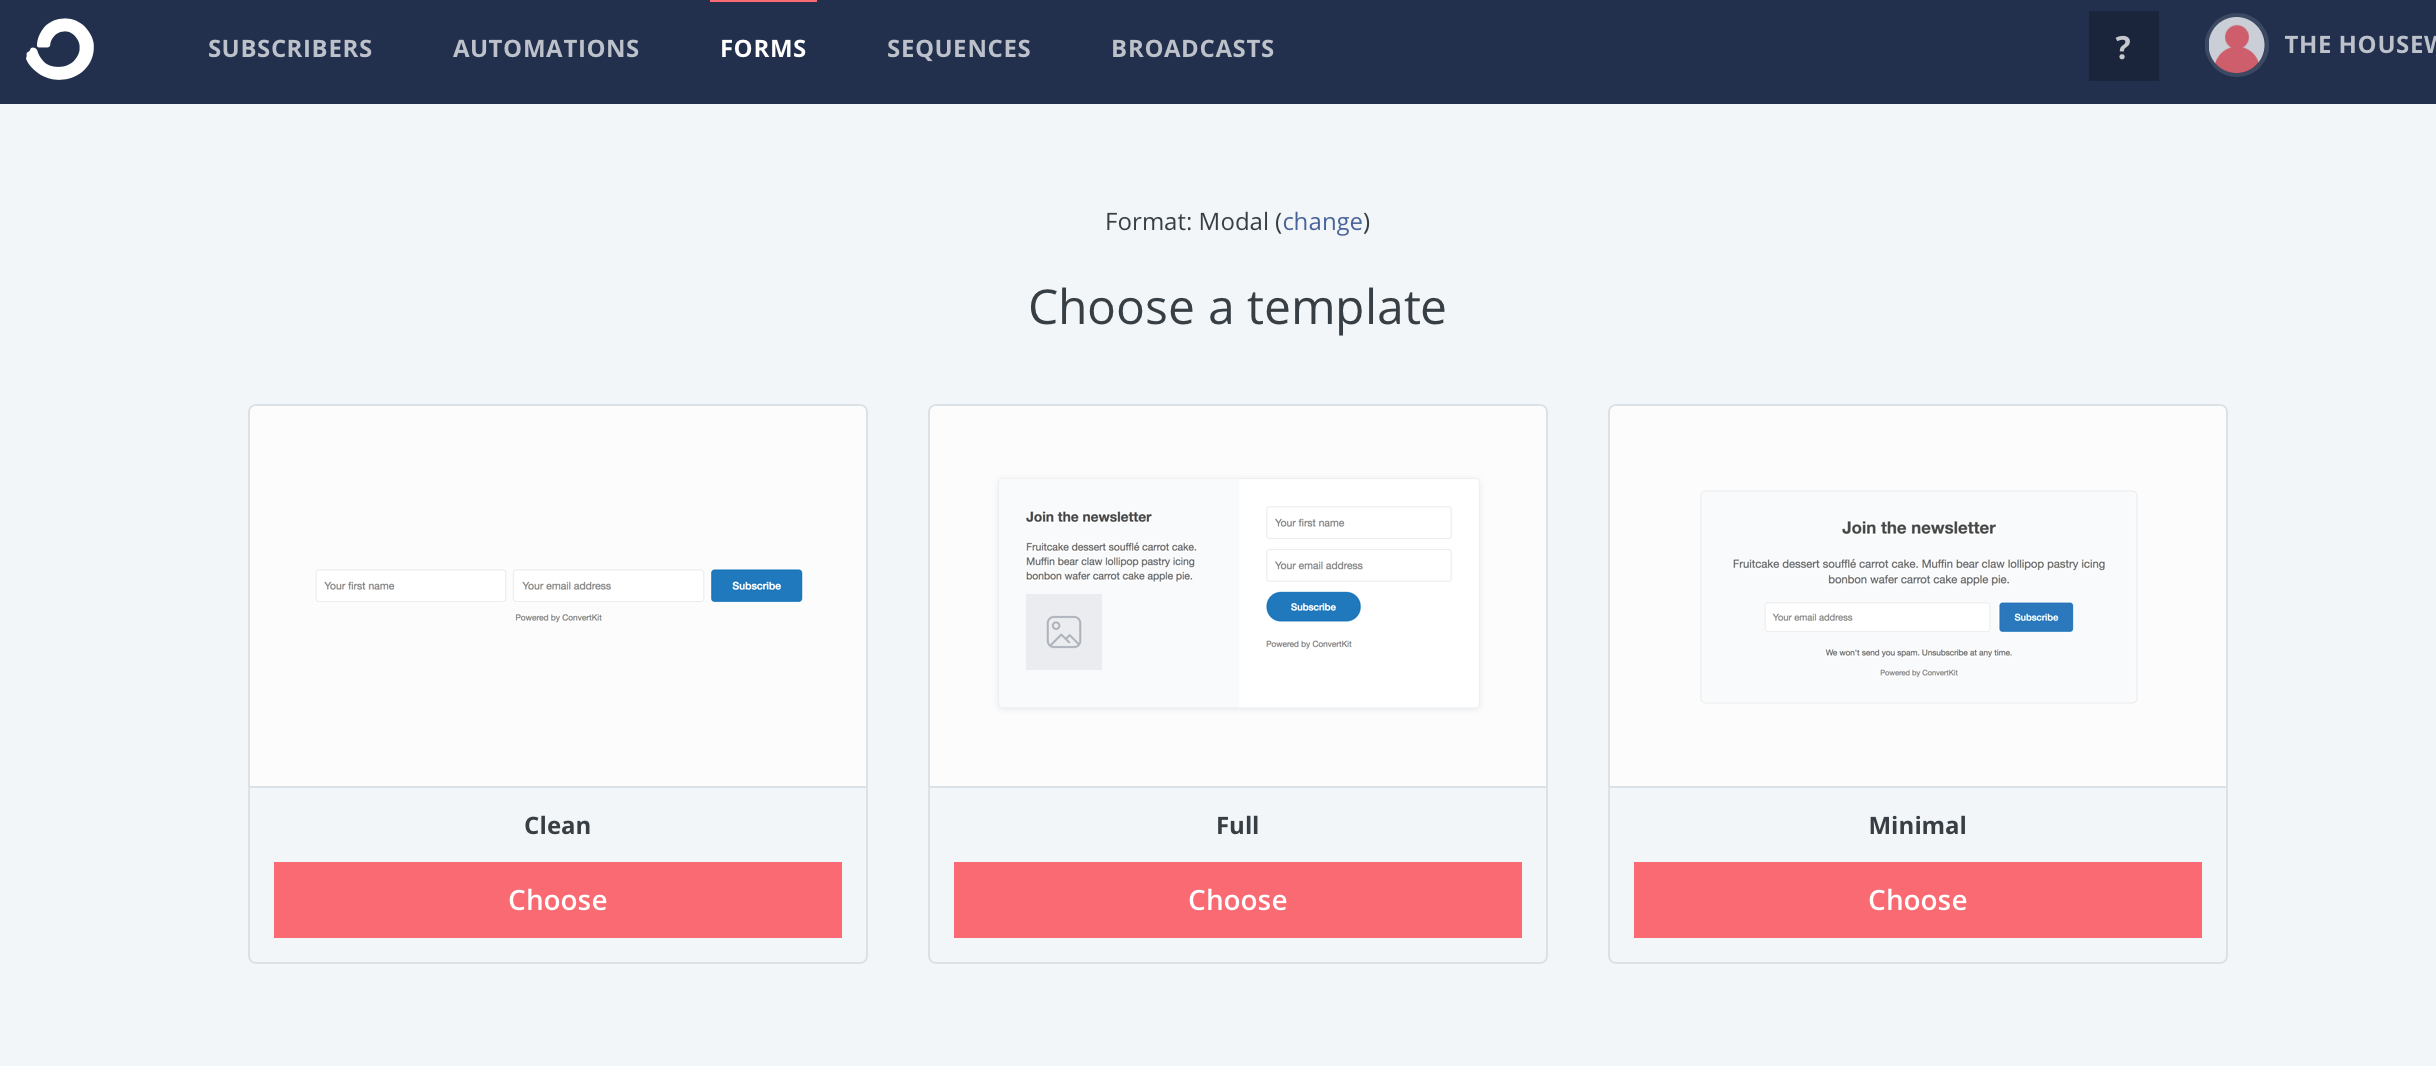 Once you choose the type of form, you can choose which template you want: clean, full, or minimal. I usually use a full form.